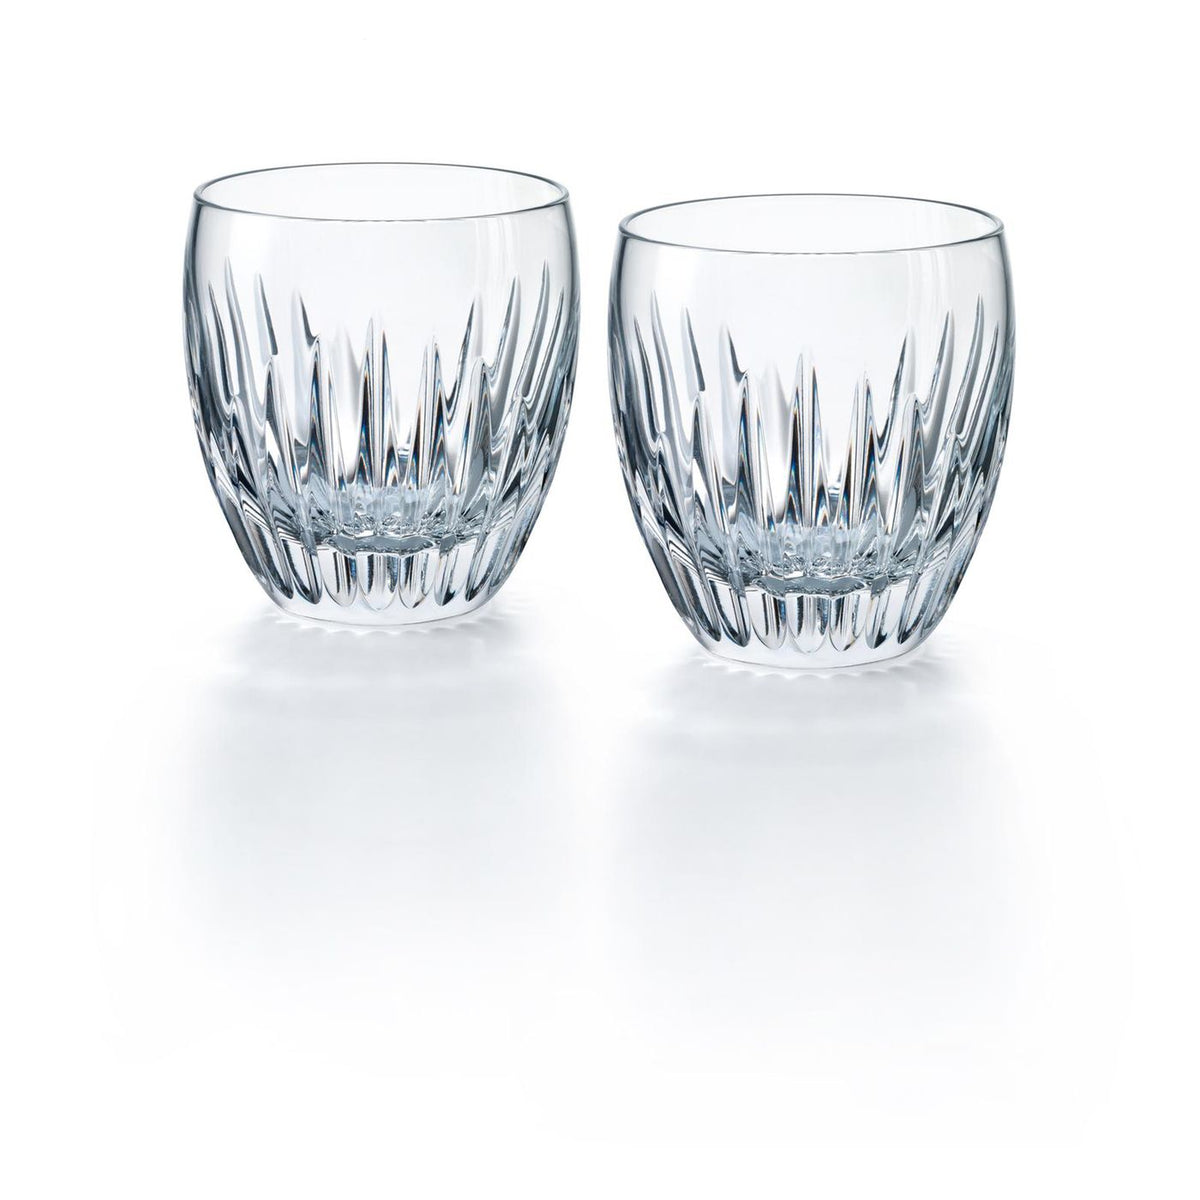 Massena Tumbler Small, Set of 2